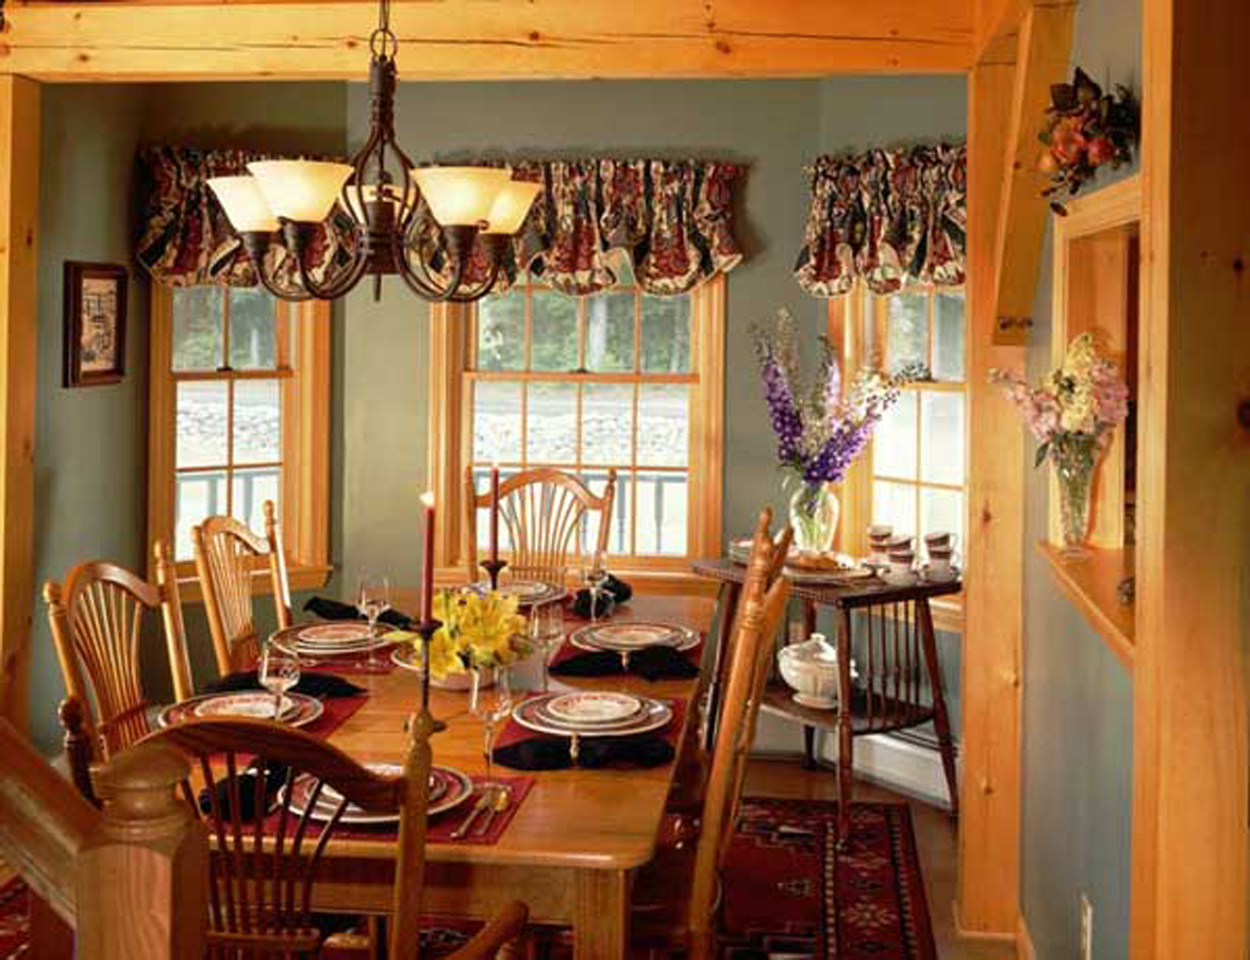 Koeppel_Classic_Country_Charm - dining_room-enlarged.jpg